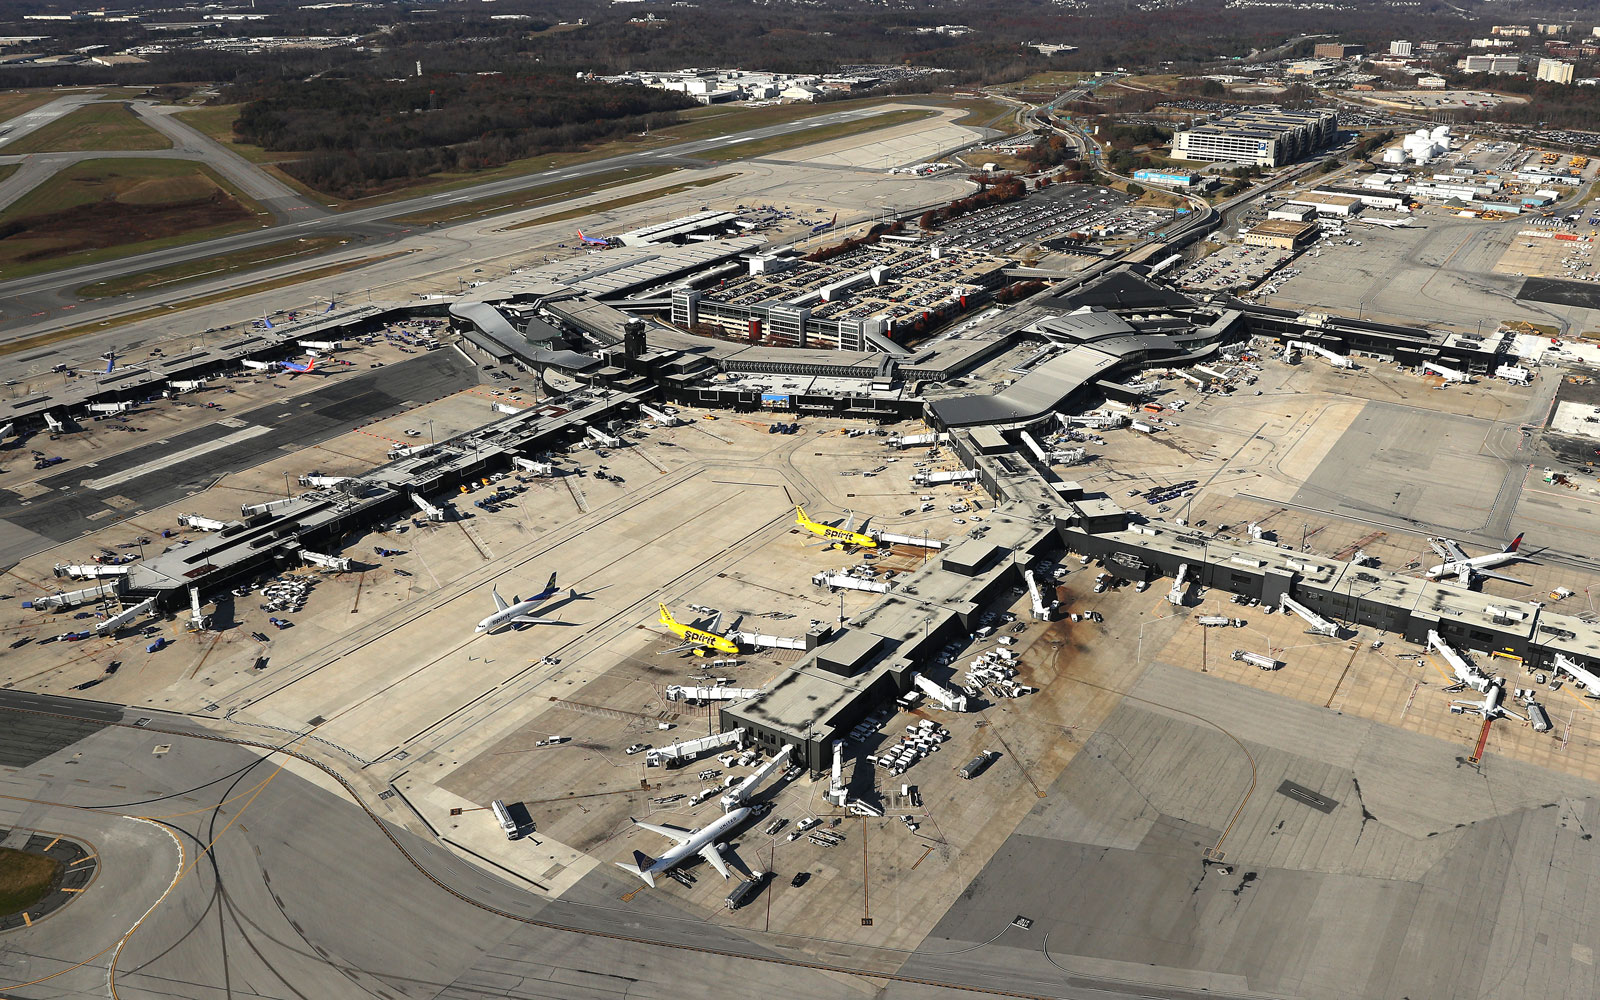 Gyms Opening at Airports